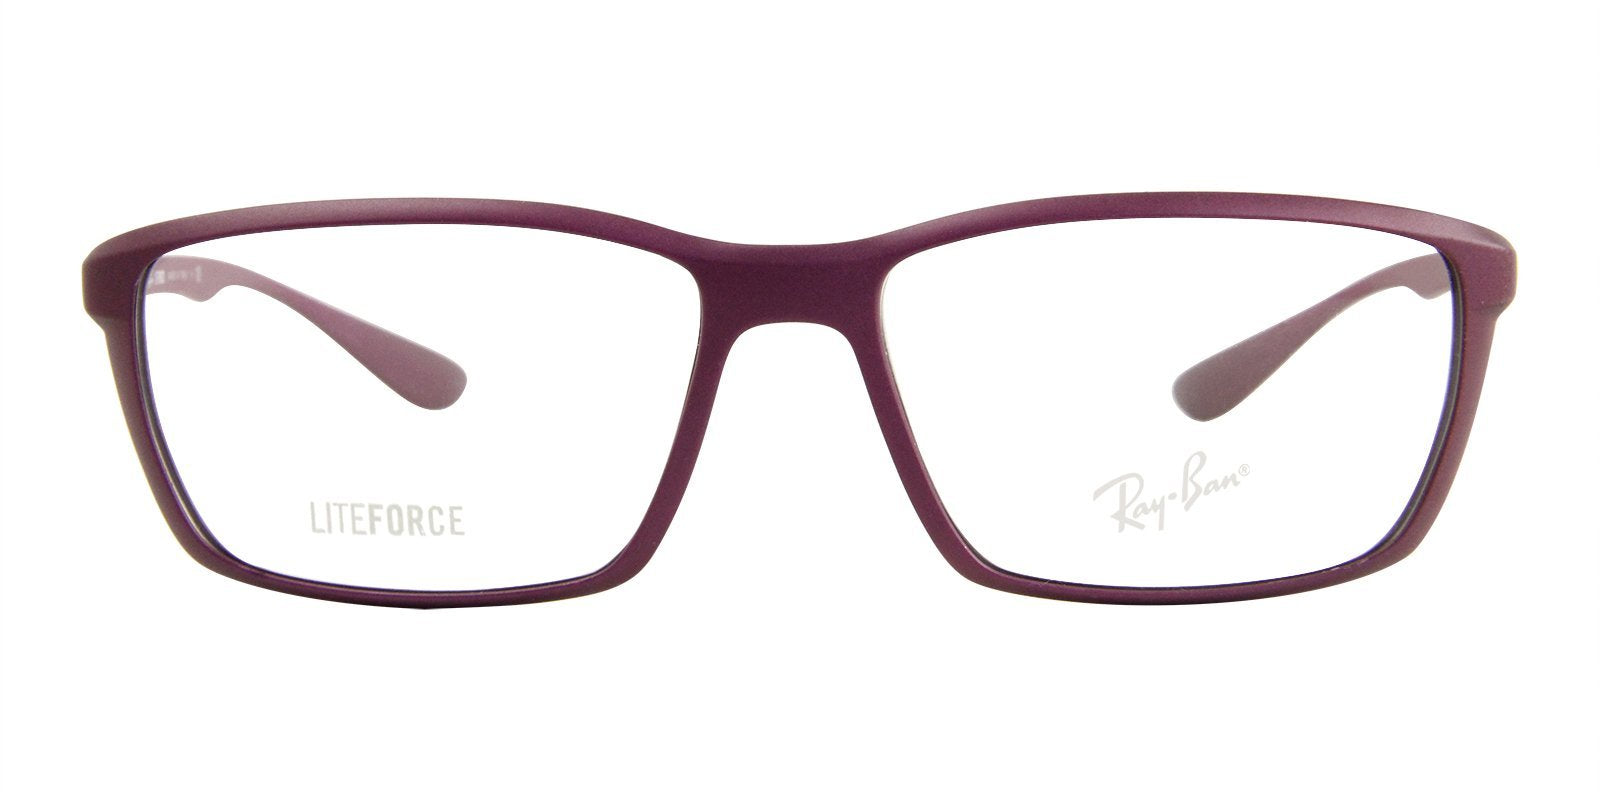 Ray Ban Rx - RX7018 Purple Rectangular Unisex Eyeglasses - 56mm-Eyeglasses-Designer Eyes